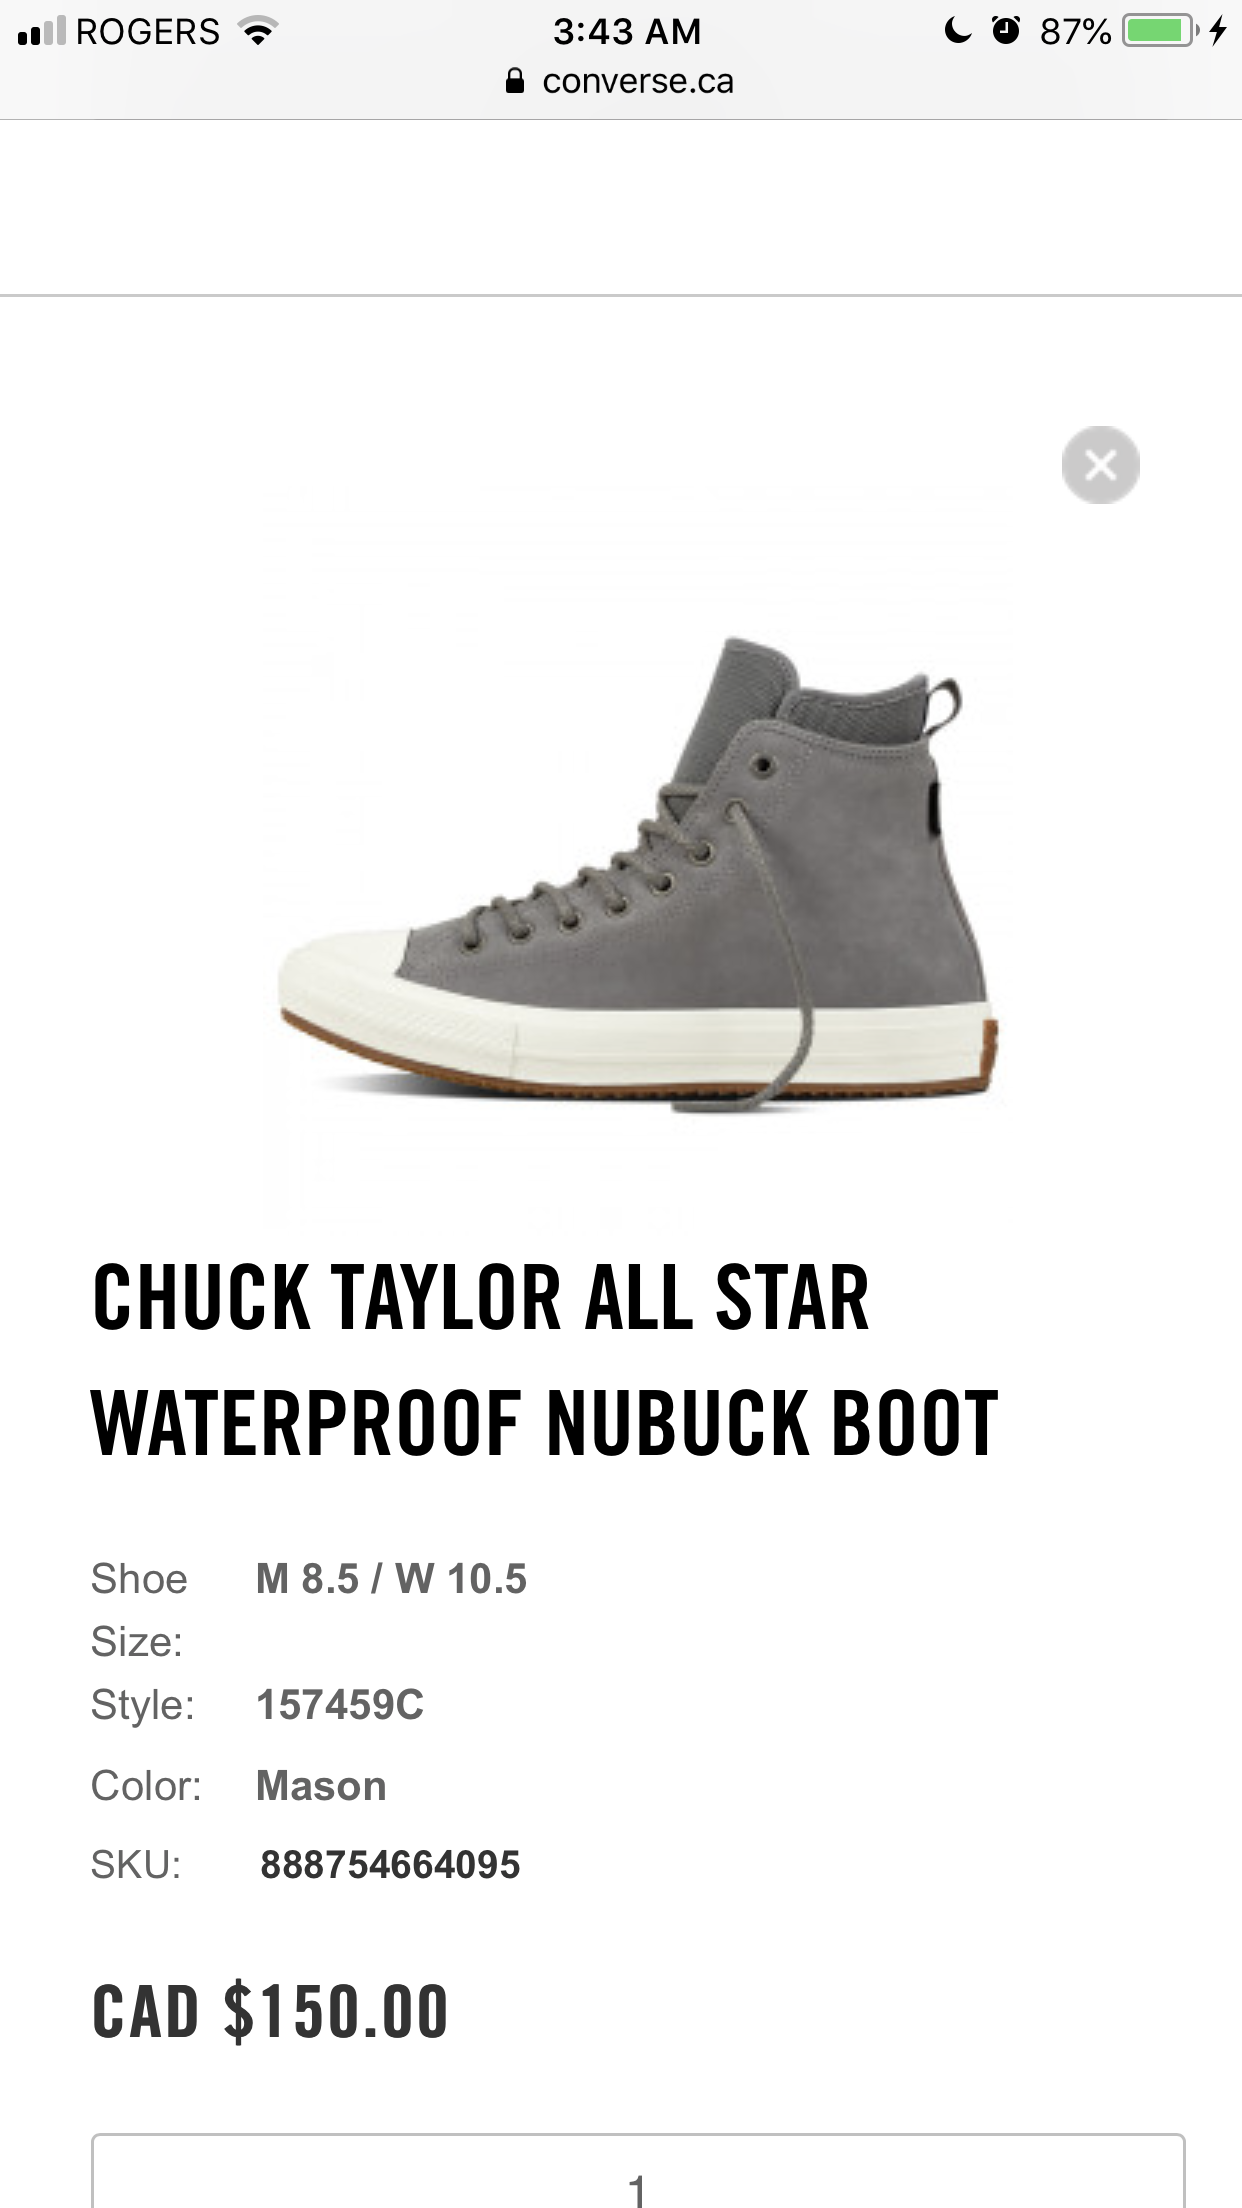 grey converse chuck taylor all star waterproof nubuck mens boot 157459c 048  fashion style b7627 7191a 6dbd7372f1